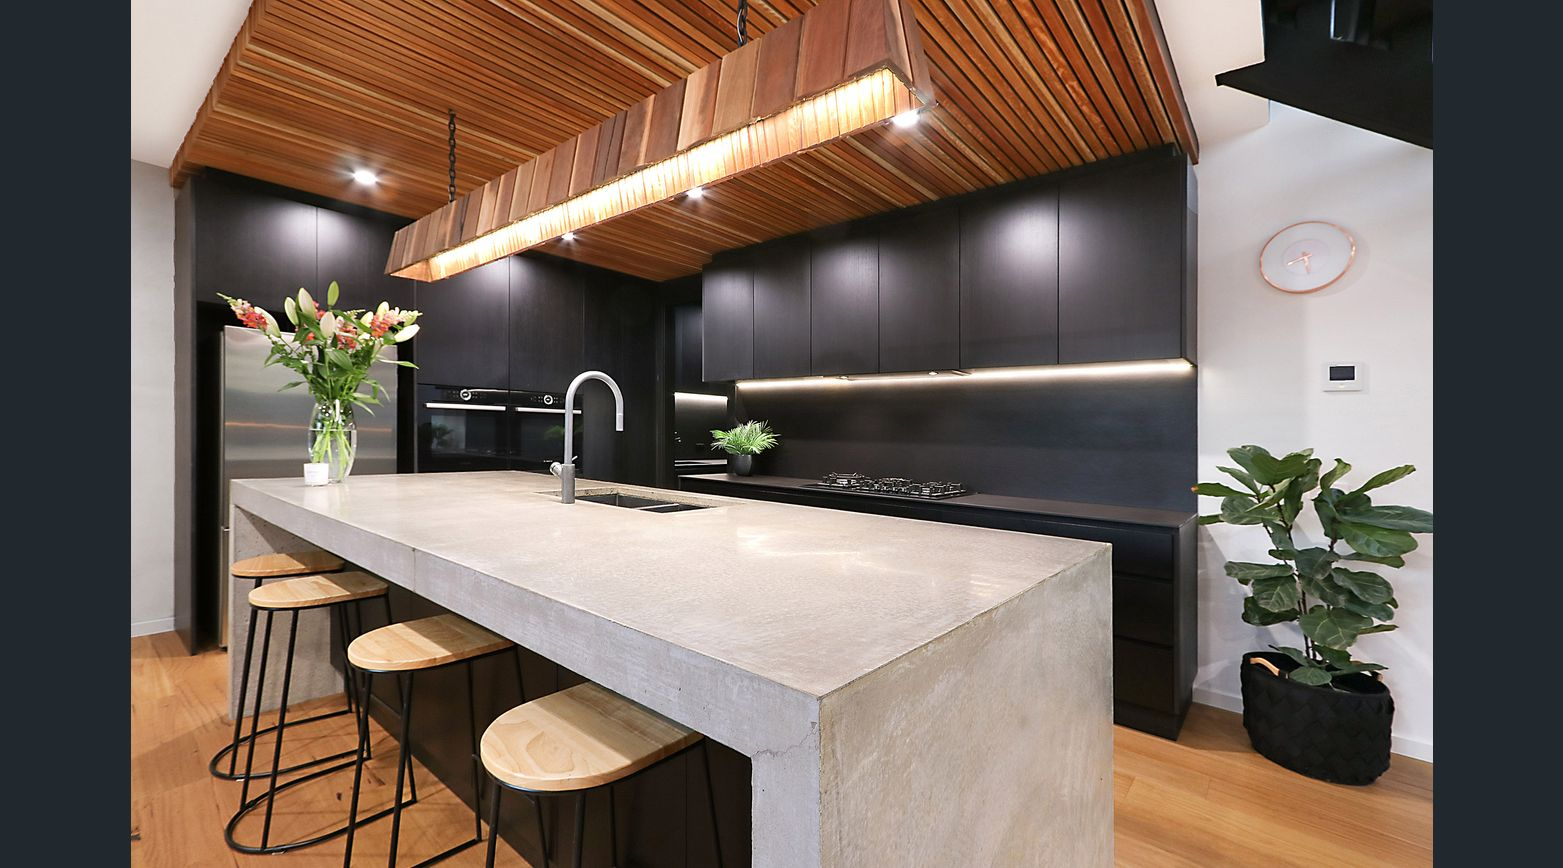 24 Ultimate Kitchen Design Ideas: Everything You Need for Your Dream Home Kitchen